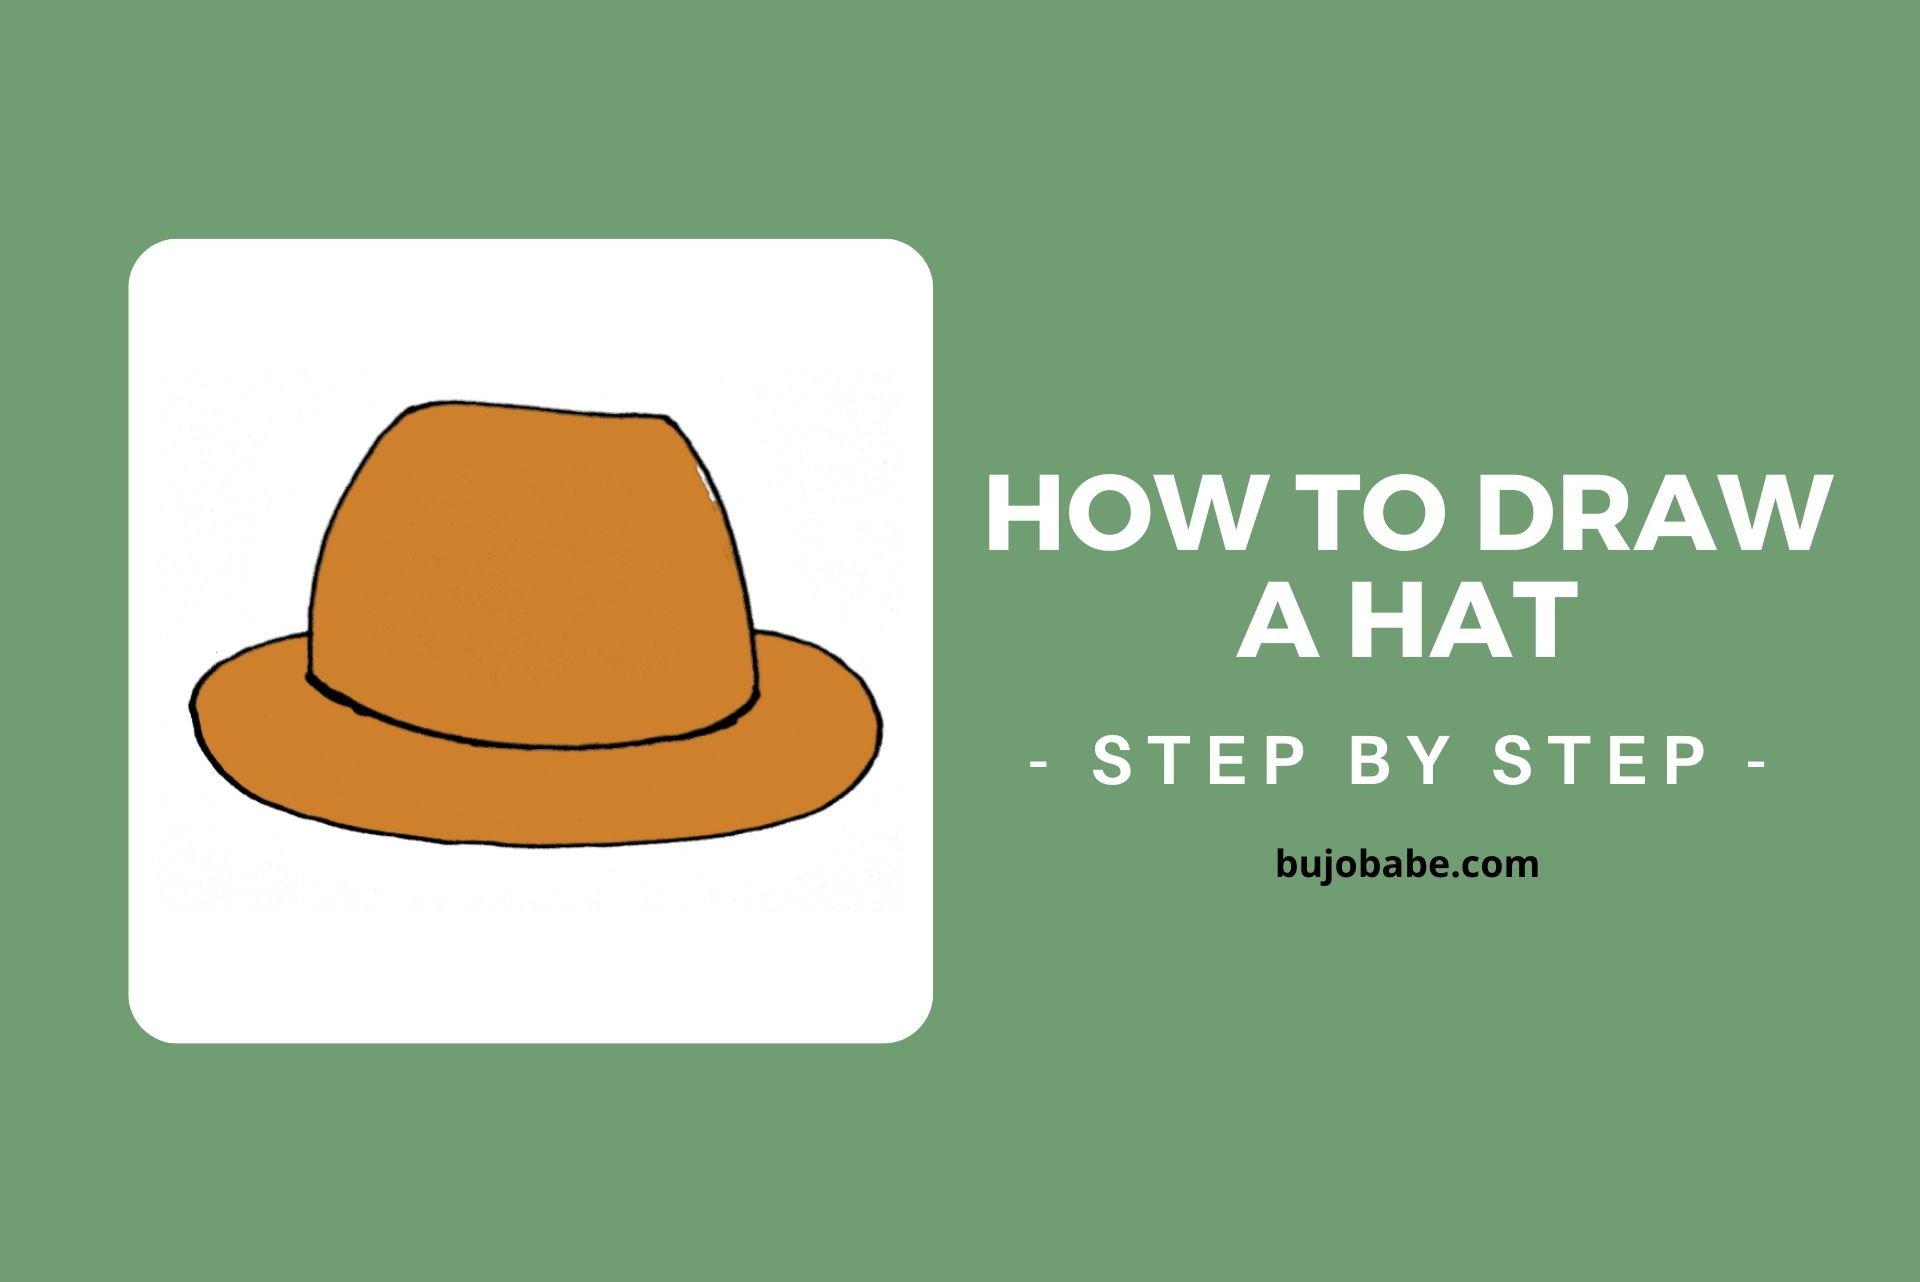 how to draw a hat step by step